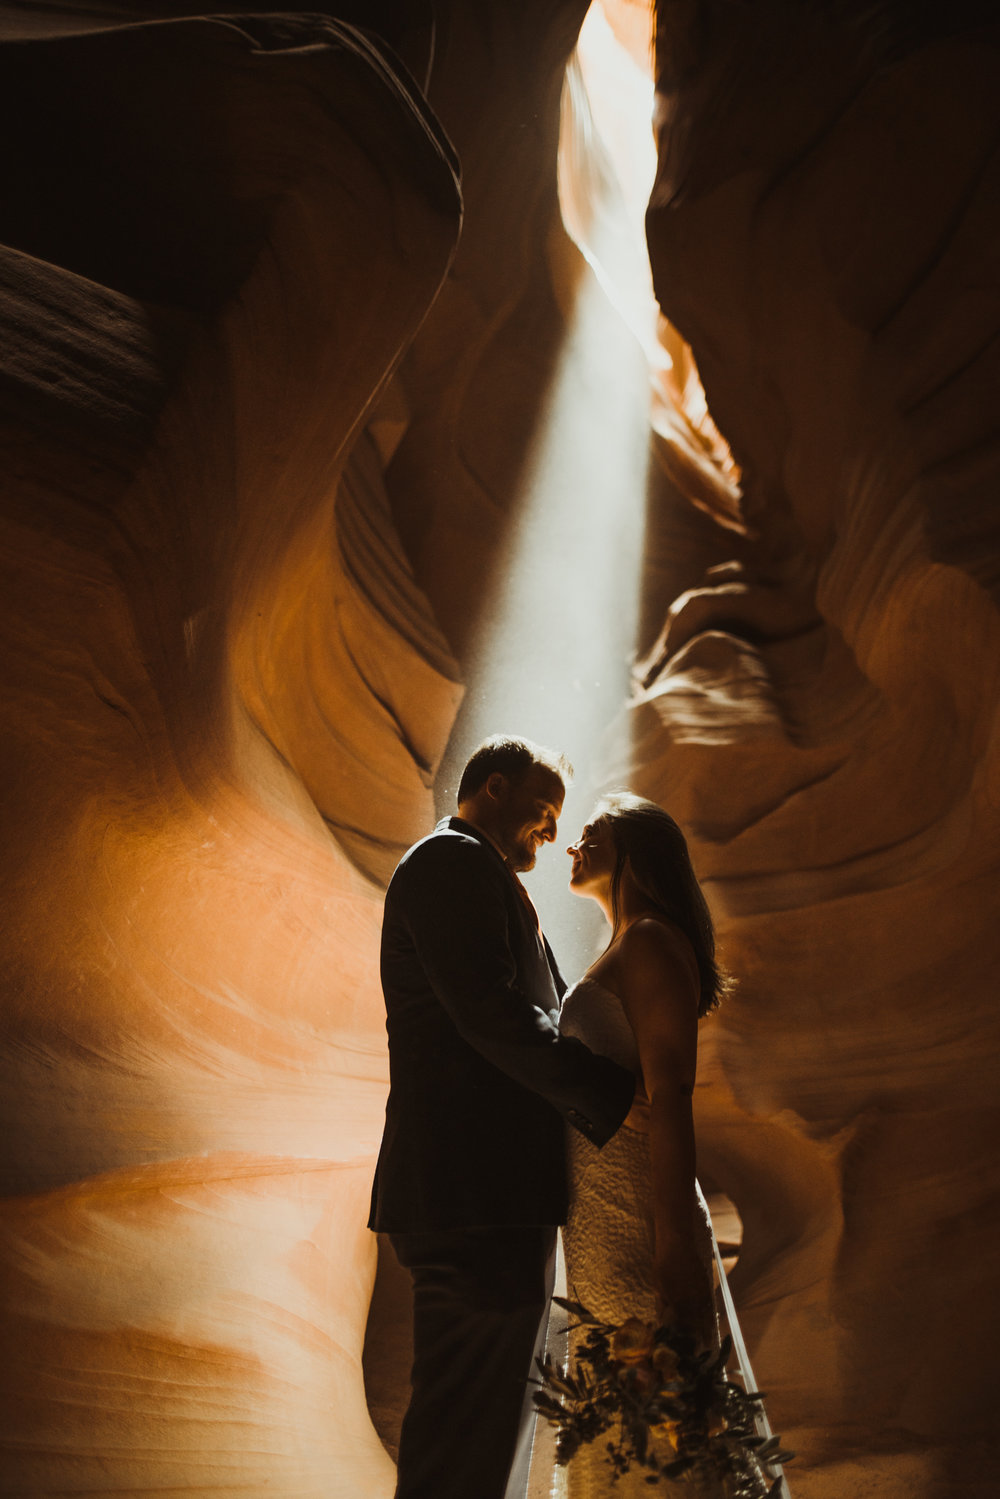 ©Isaiah + Taylor Photography - Lake Powell Elopement & Antelope Canyon & Horseshoe Bend, Page, Arizona-85.jpg